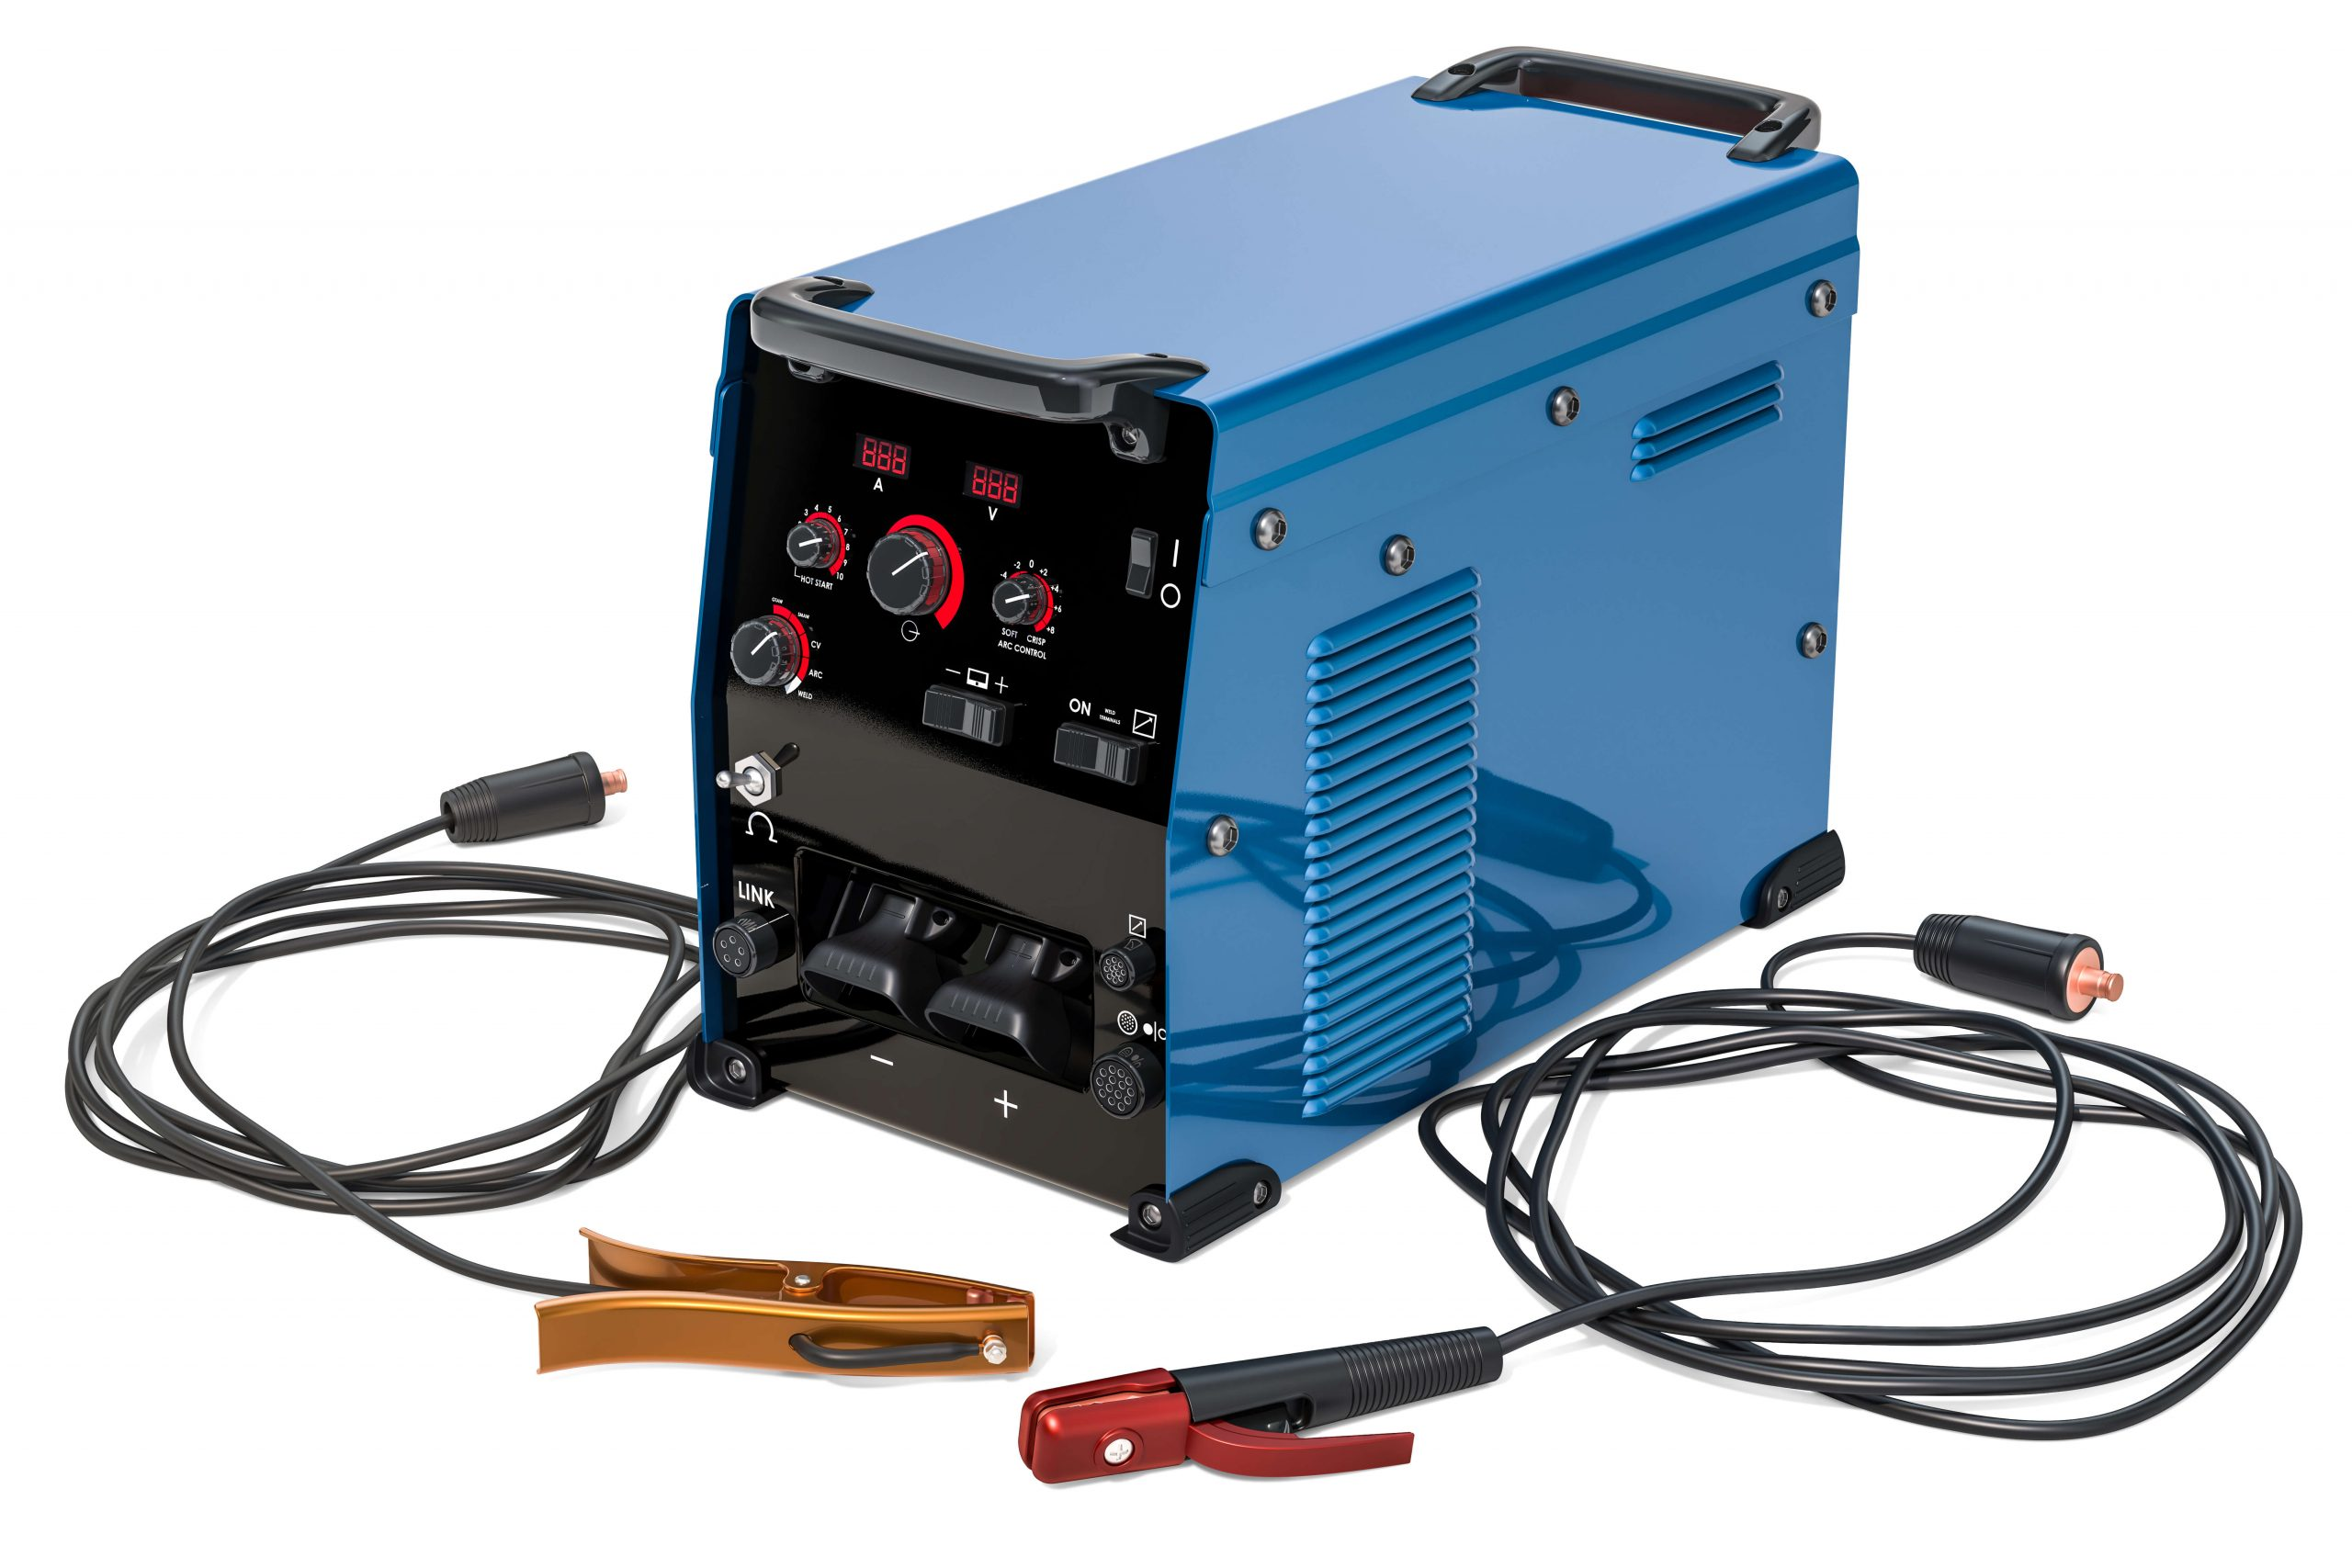 Miller Millermatic 255 MIG Welder Review